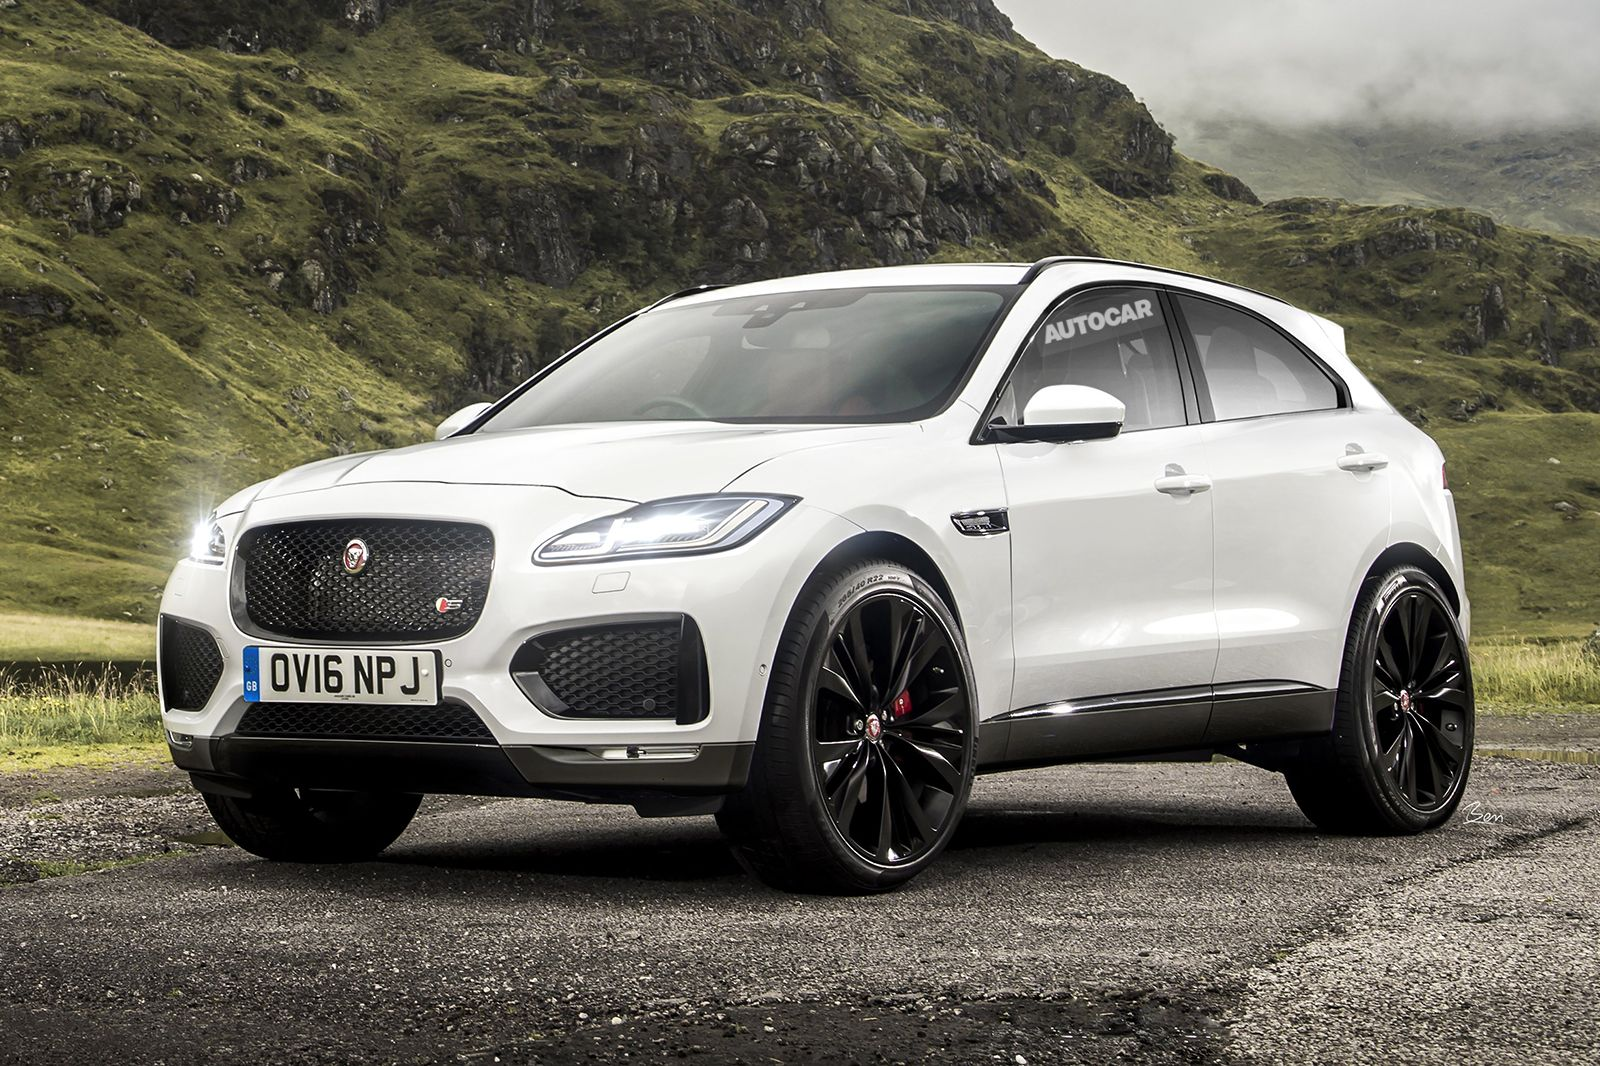 jaguar e pace new compact suv jaguar pinterest compact suv cars and dream cars. Black Bedroom Furniture Sets. Home Design Ideas